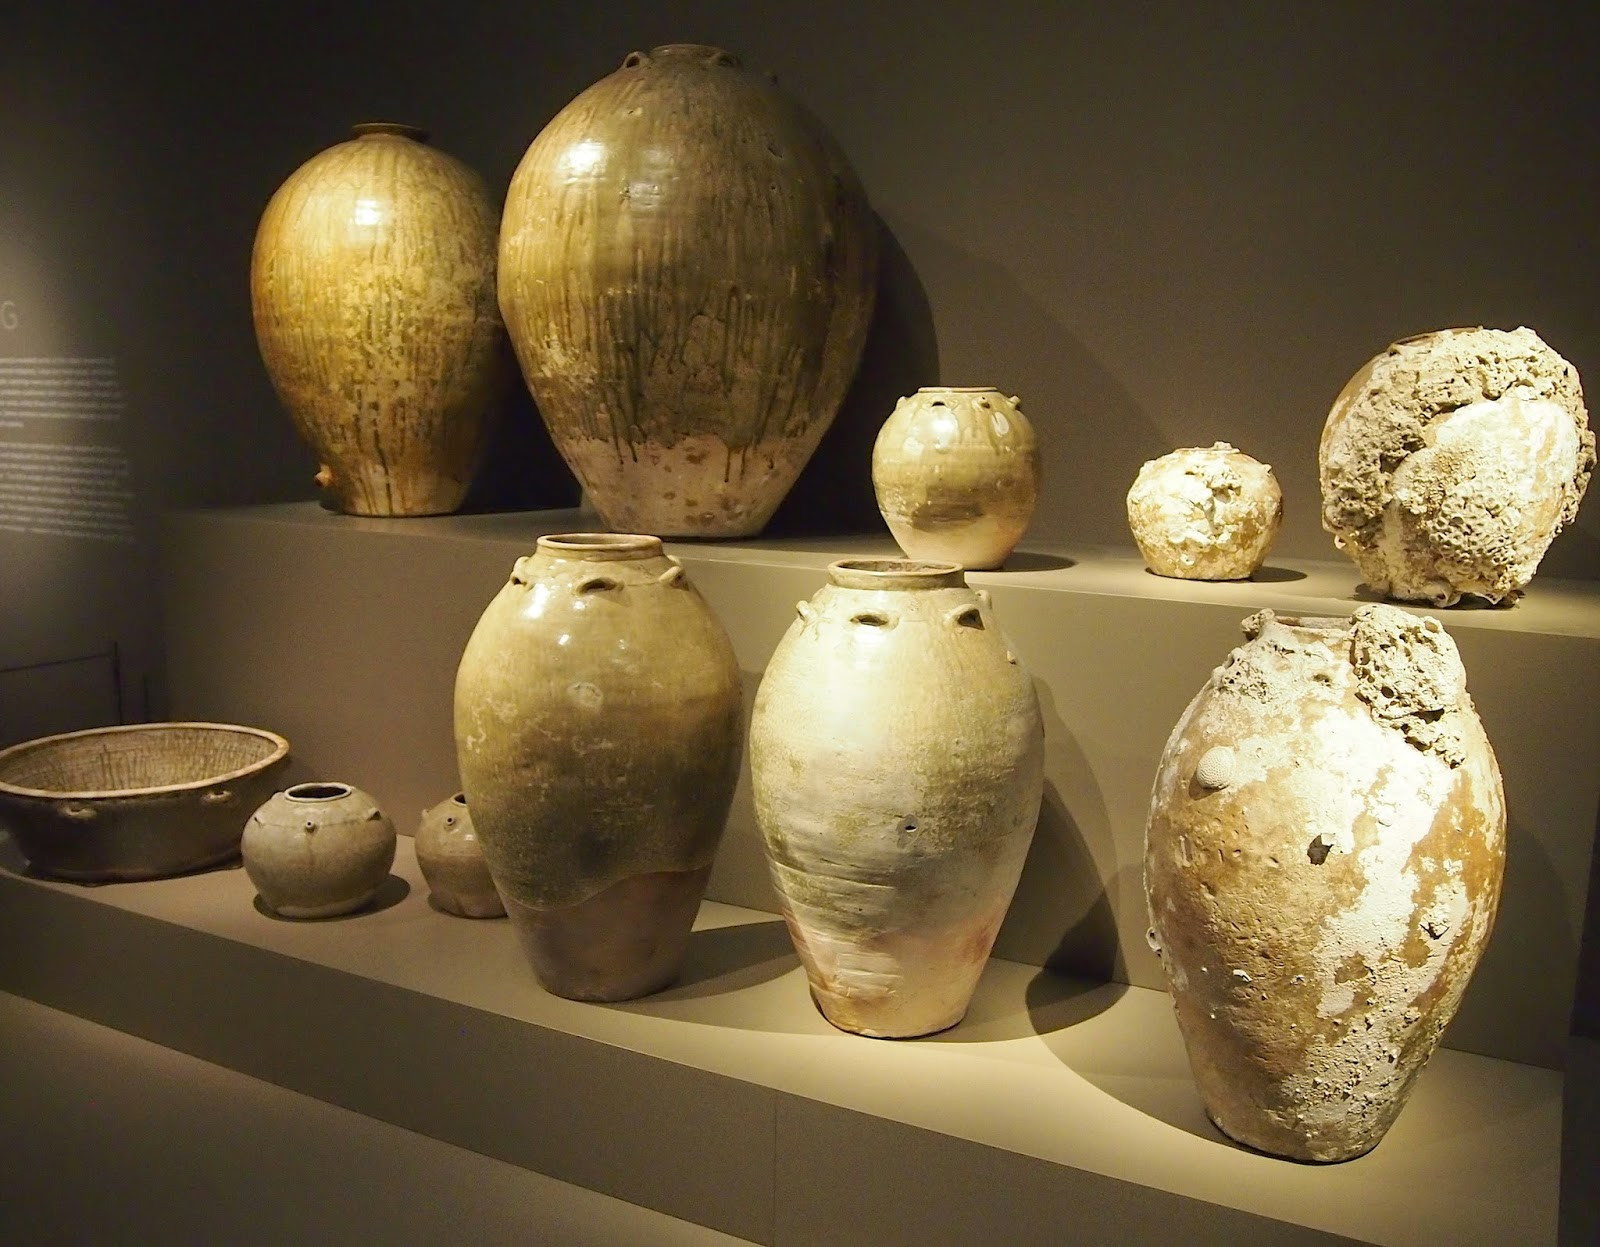 Imax Agatha Ceramic Vases Set Of 3 Of Shipwreck A Controversy Magnet now An Exhibition at Aga Khan Museum Regarding Recovered Pottery On Display at the Aga Kan Museum Photo George socka